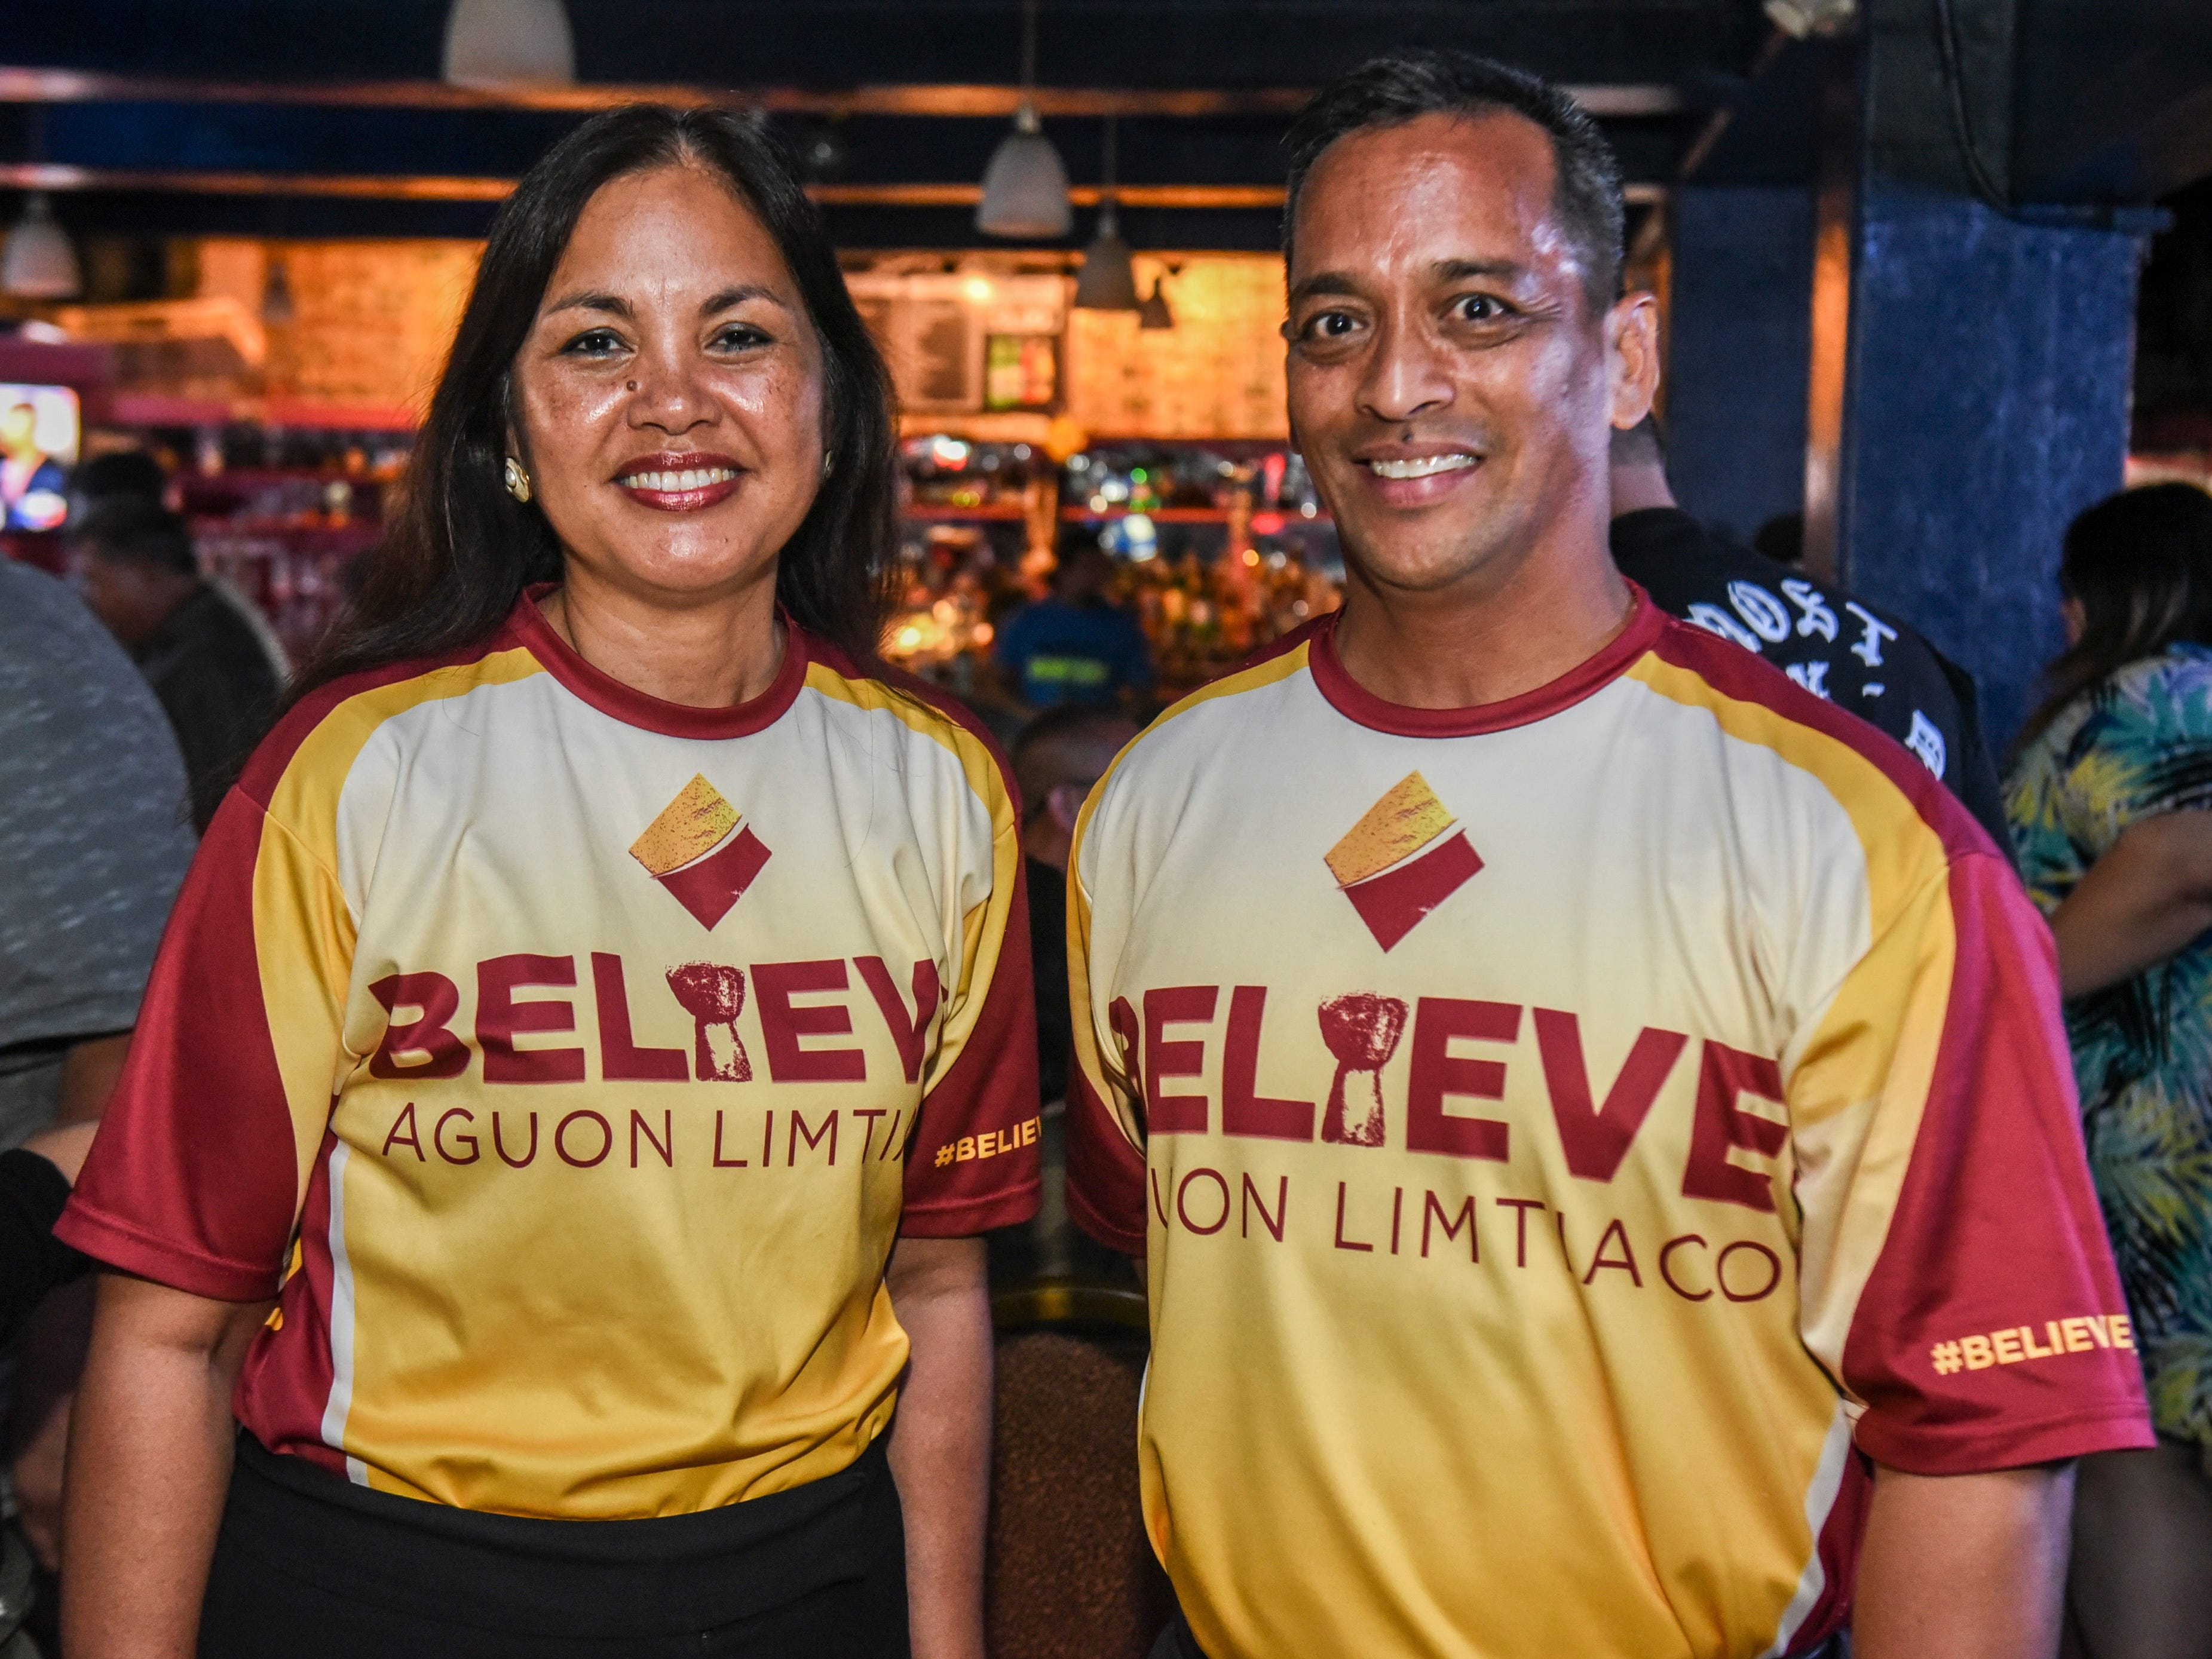 Write-in gubernatorial candidates, Sen. Frank Aguon Jr, right, and his running mate, Alicia Limtiaco, come together for a photo in Agana Heights, during the early morning hours, as they and their supporters wait for election returns to be announced.